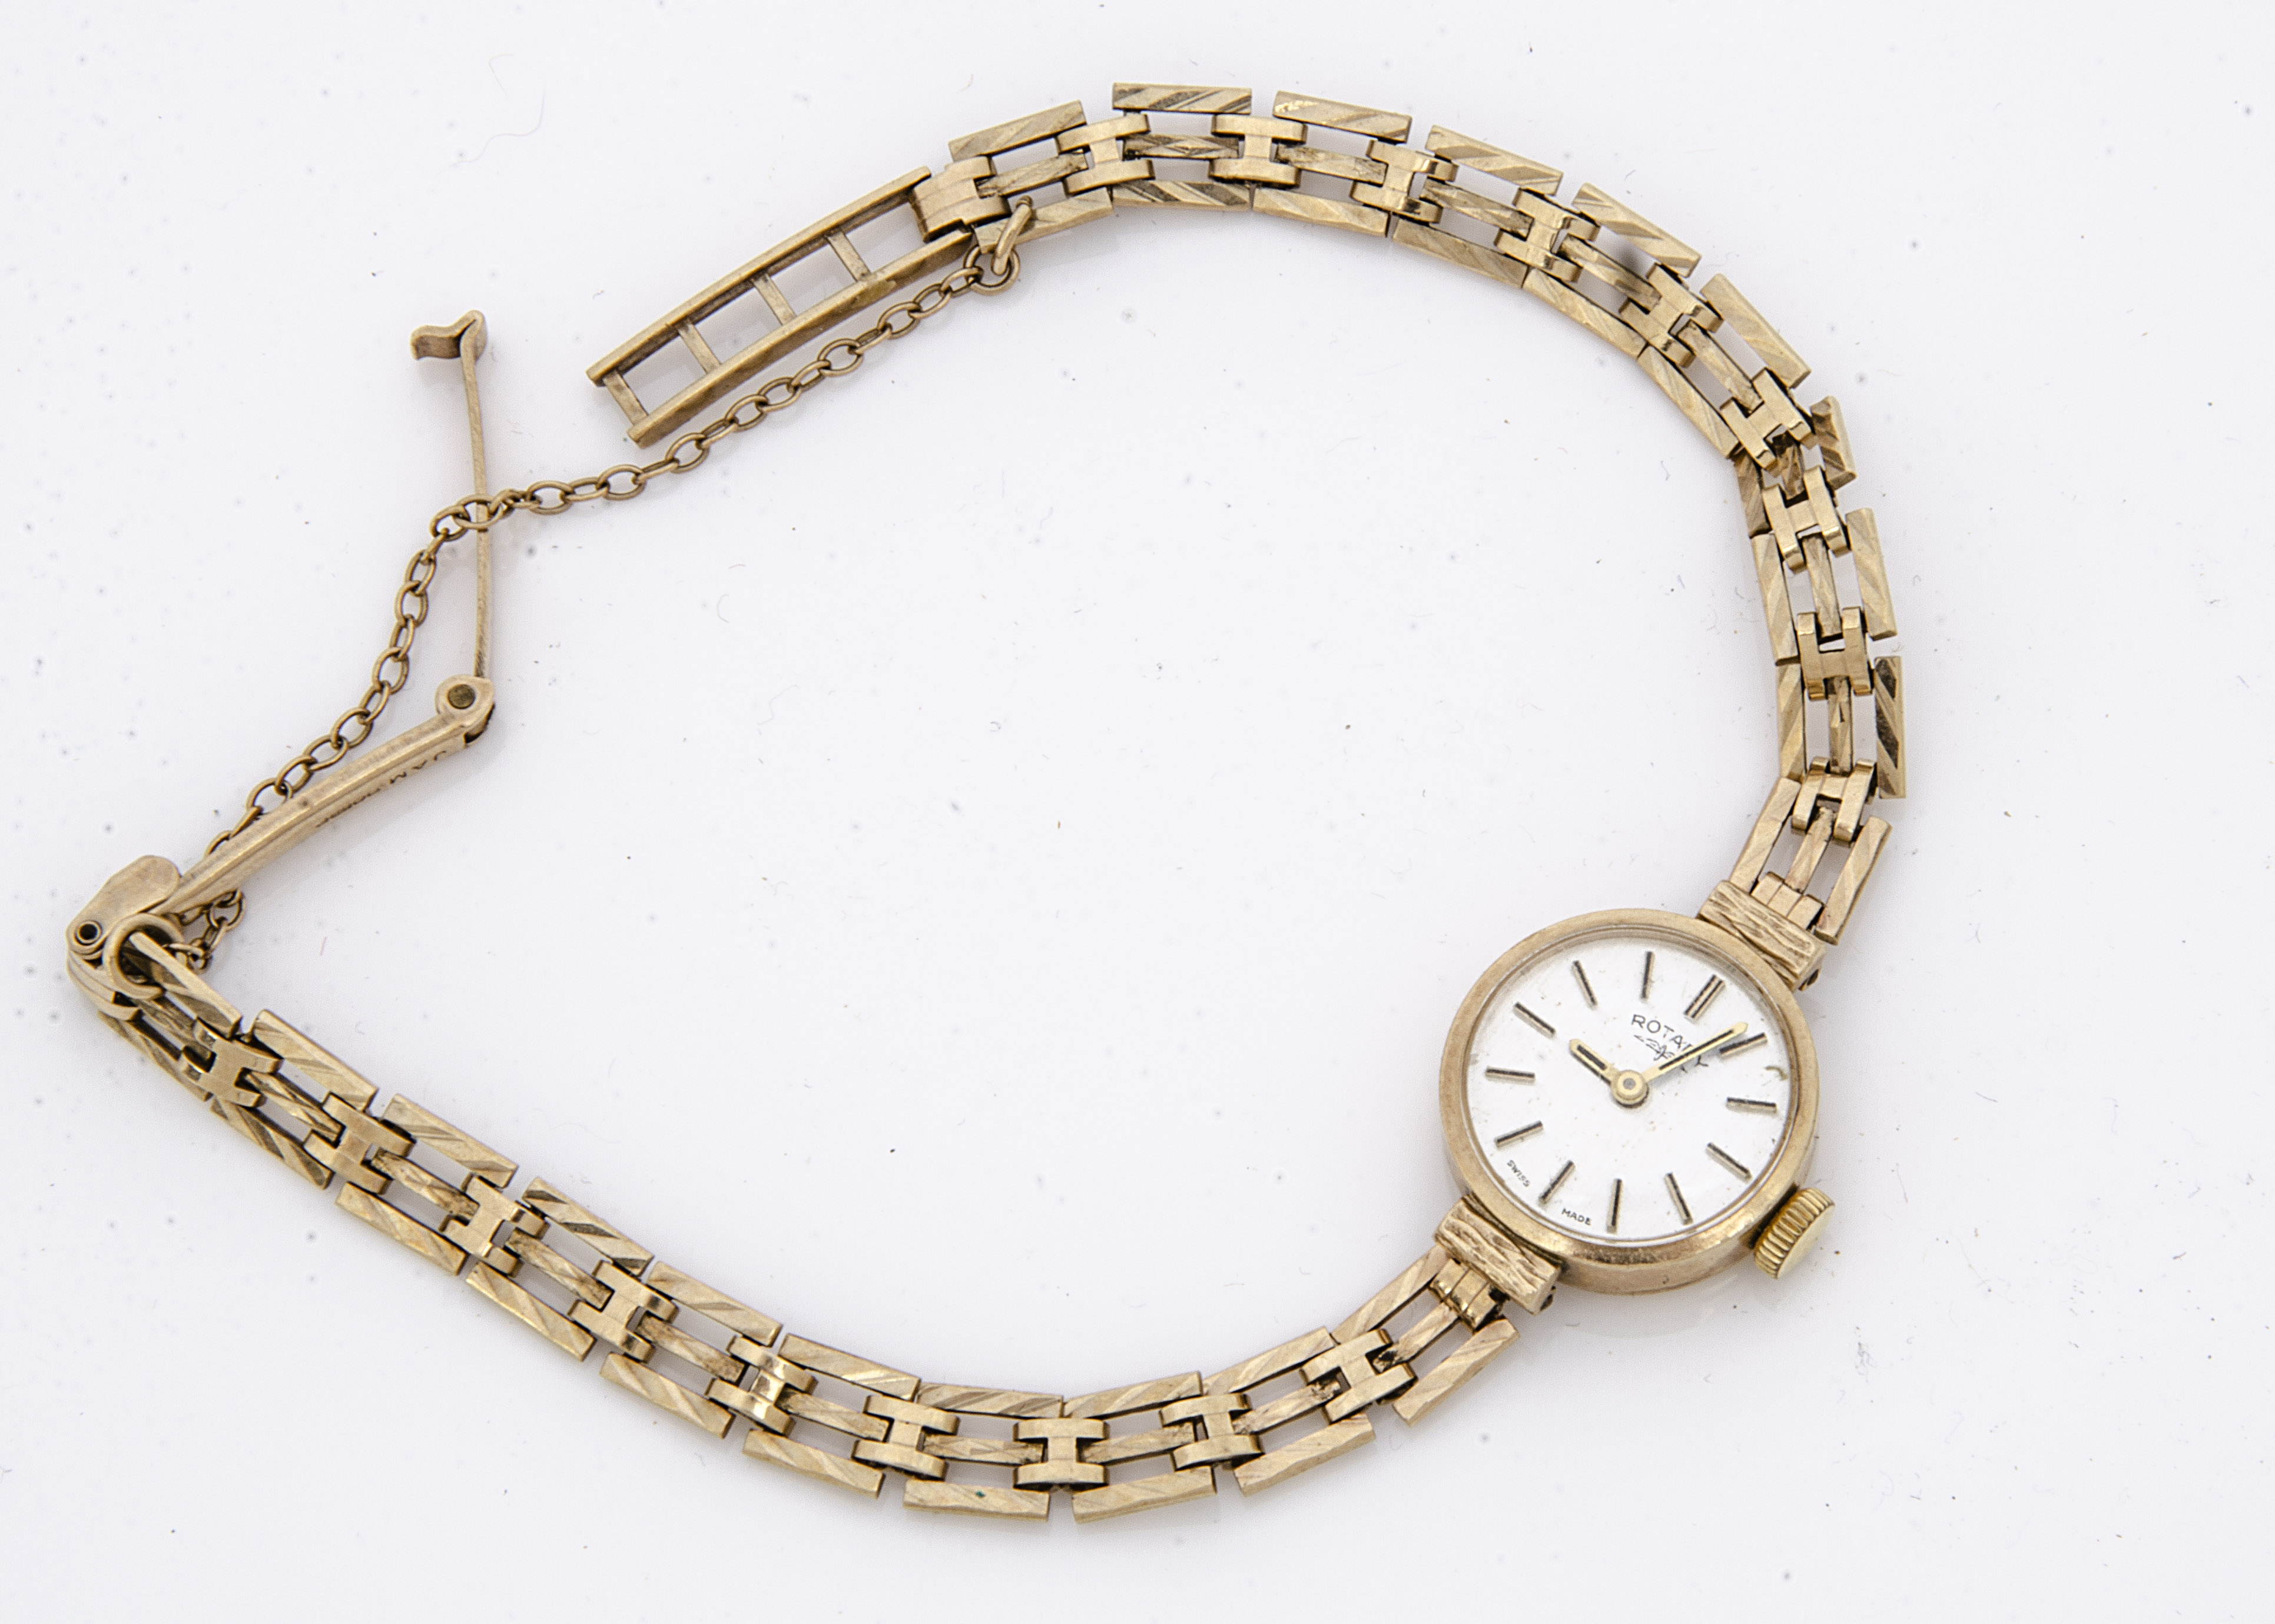 A c1980s Rotary 9ct gold ladies wristwatch, 17mm, having integrated 9ct gold bracelet, appears to